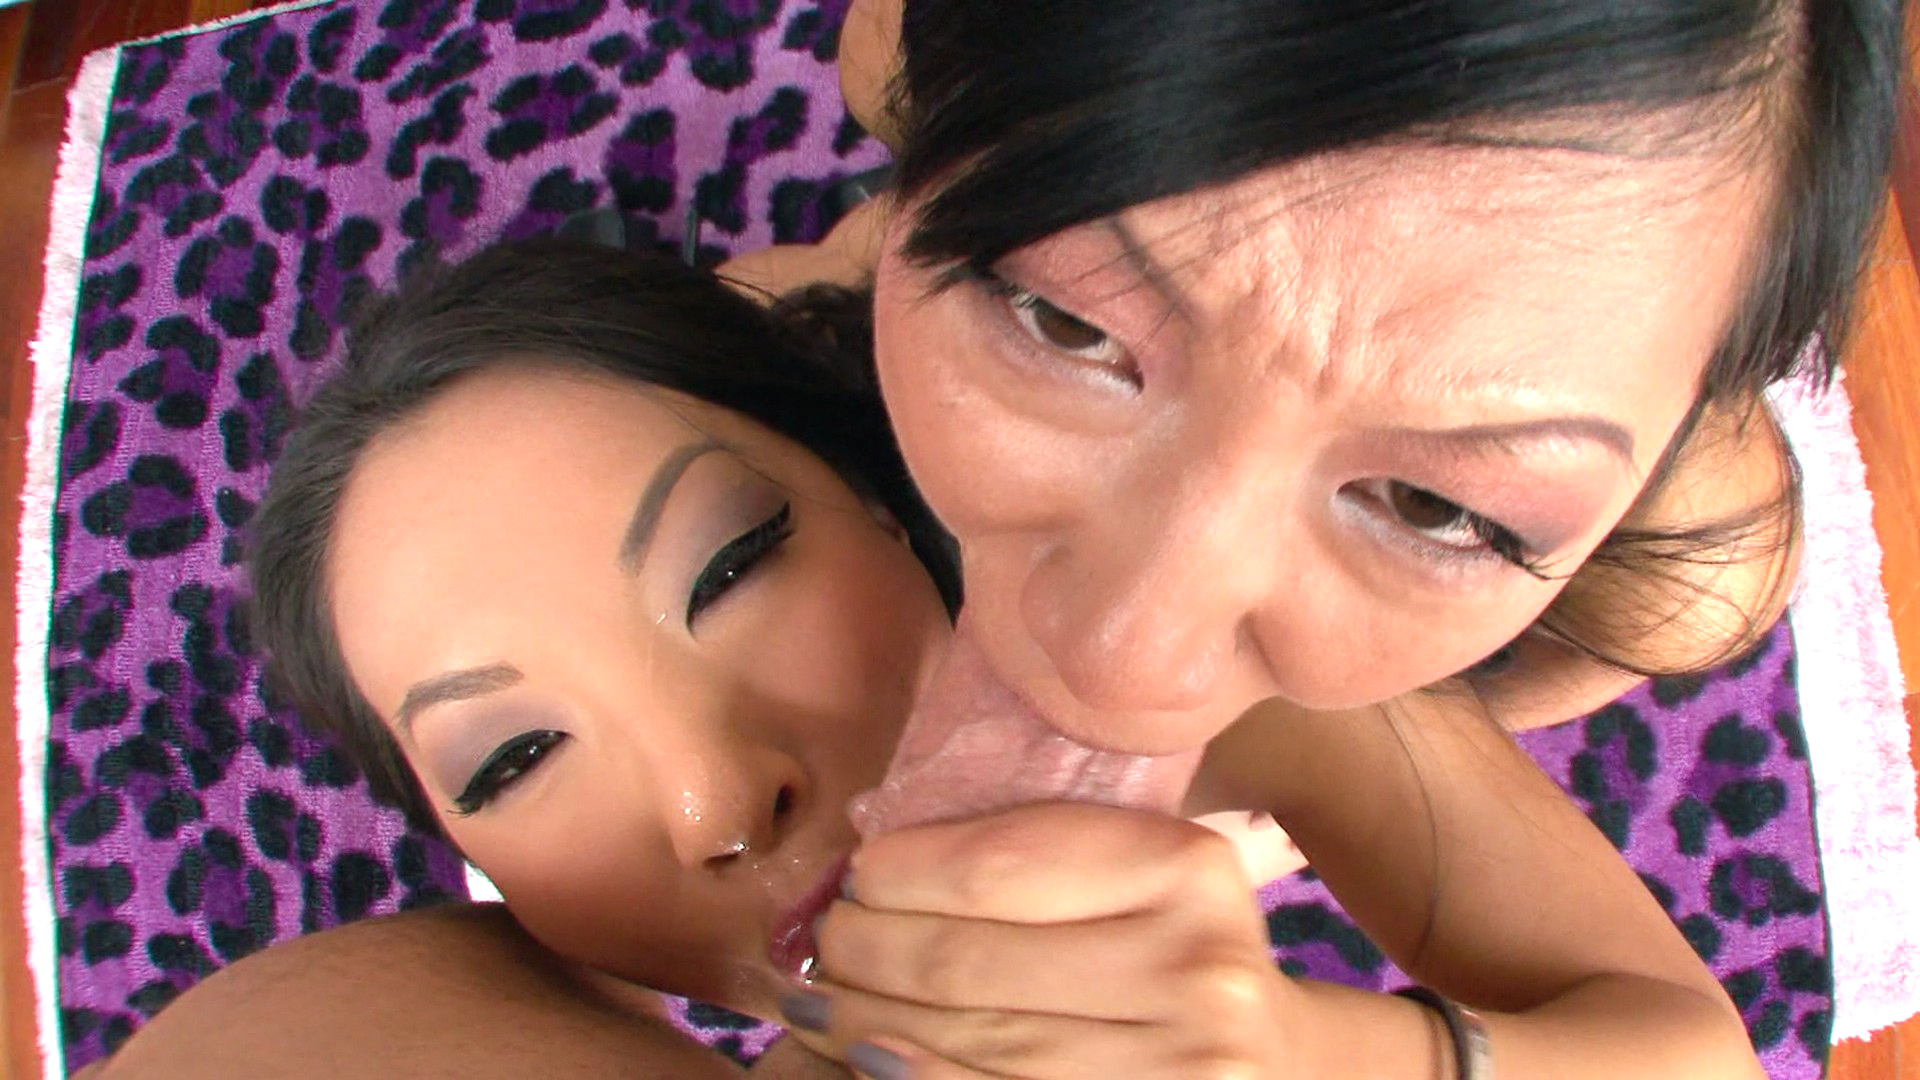 Tia Ling, Asa Akira porn stars video from Mike Adriano